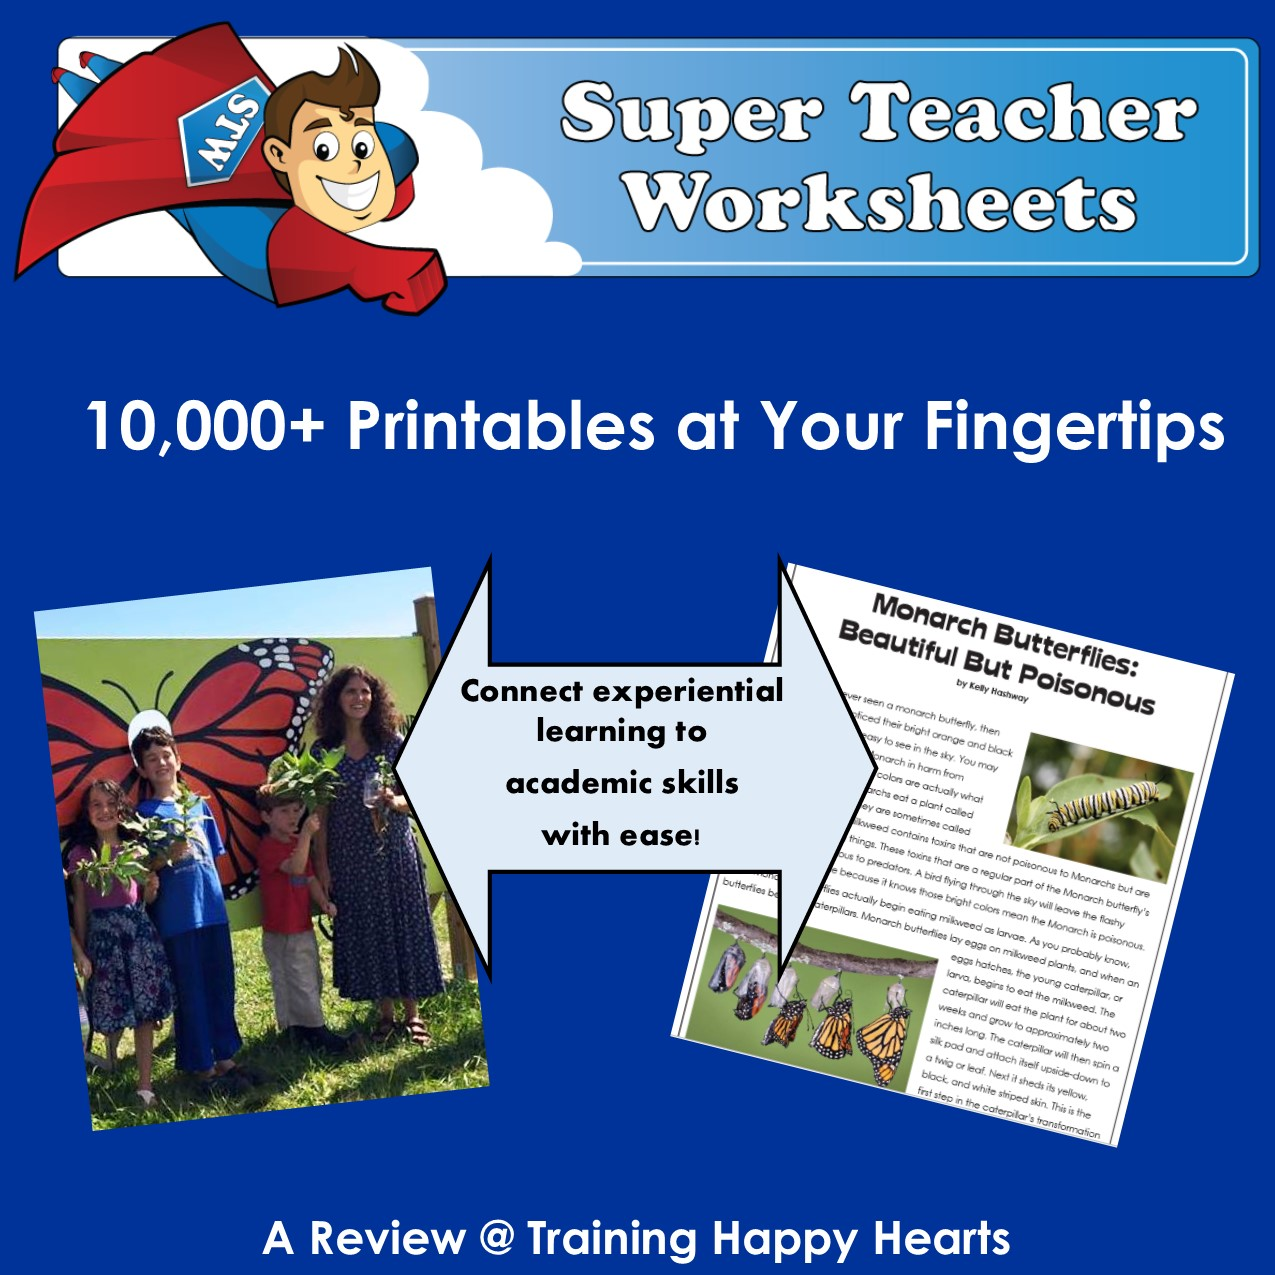 Worksheet Super Teacher Worksheets Username And Password super teacher worksheets login and password fireyourmentor free username 2014 smart wiki today 2